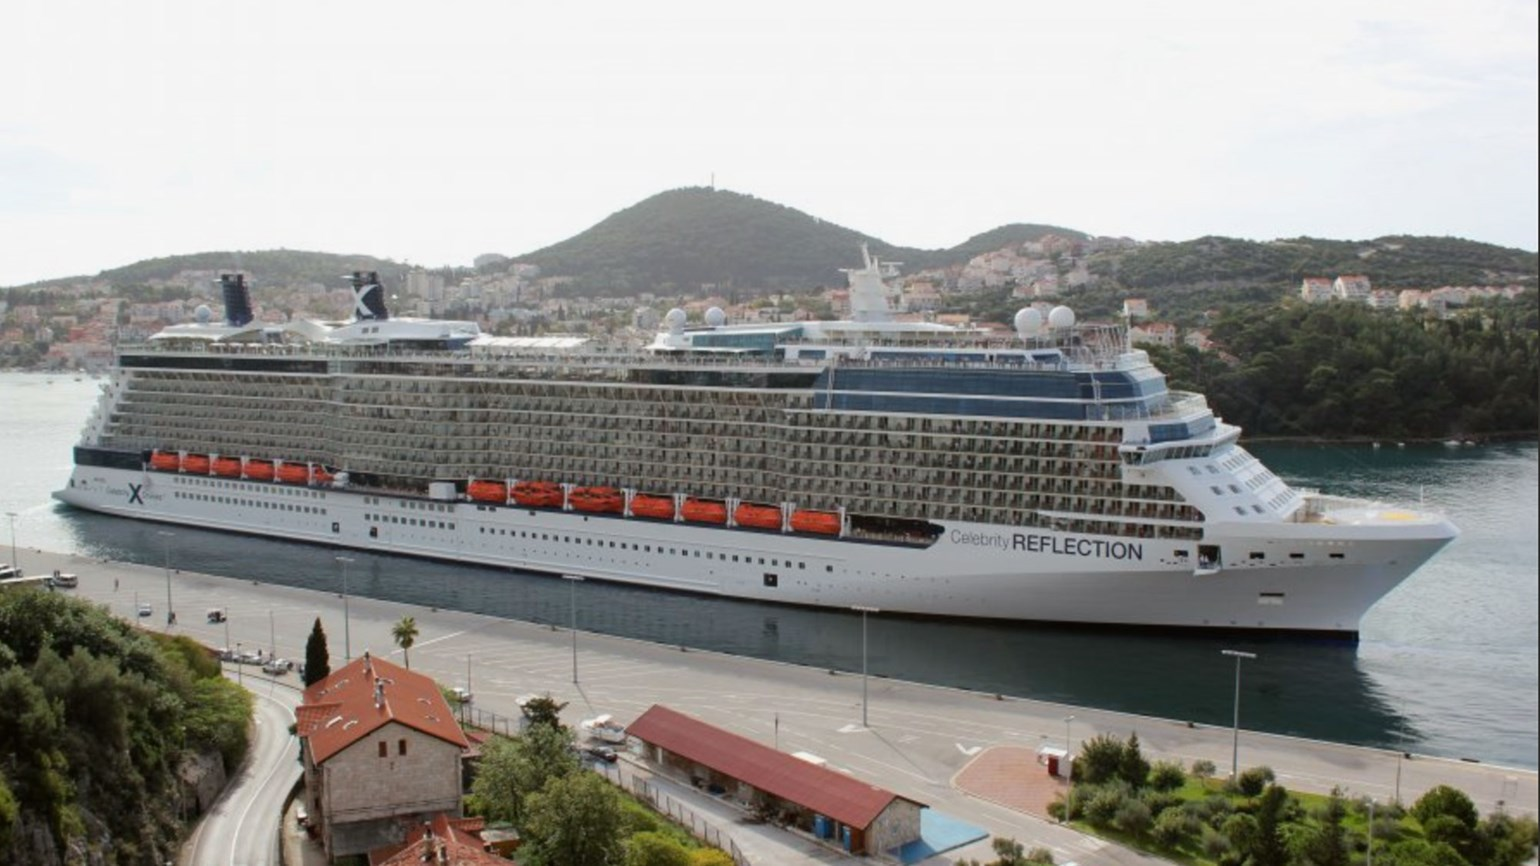 Dubrovnik seeks to sharply curtail cruise tourism